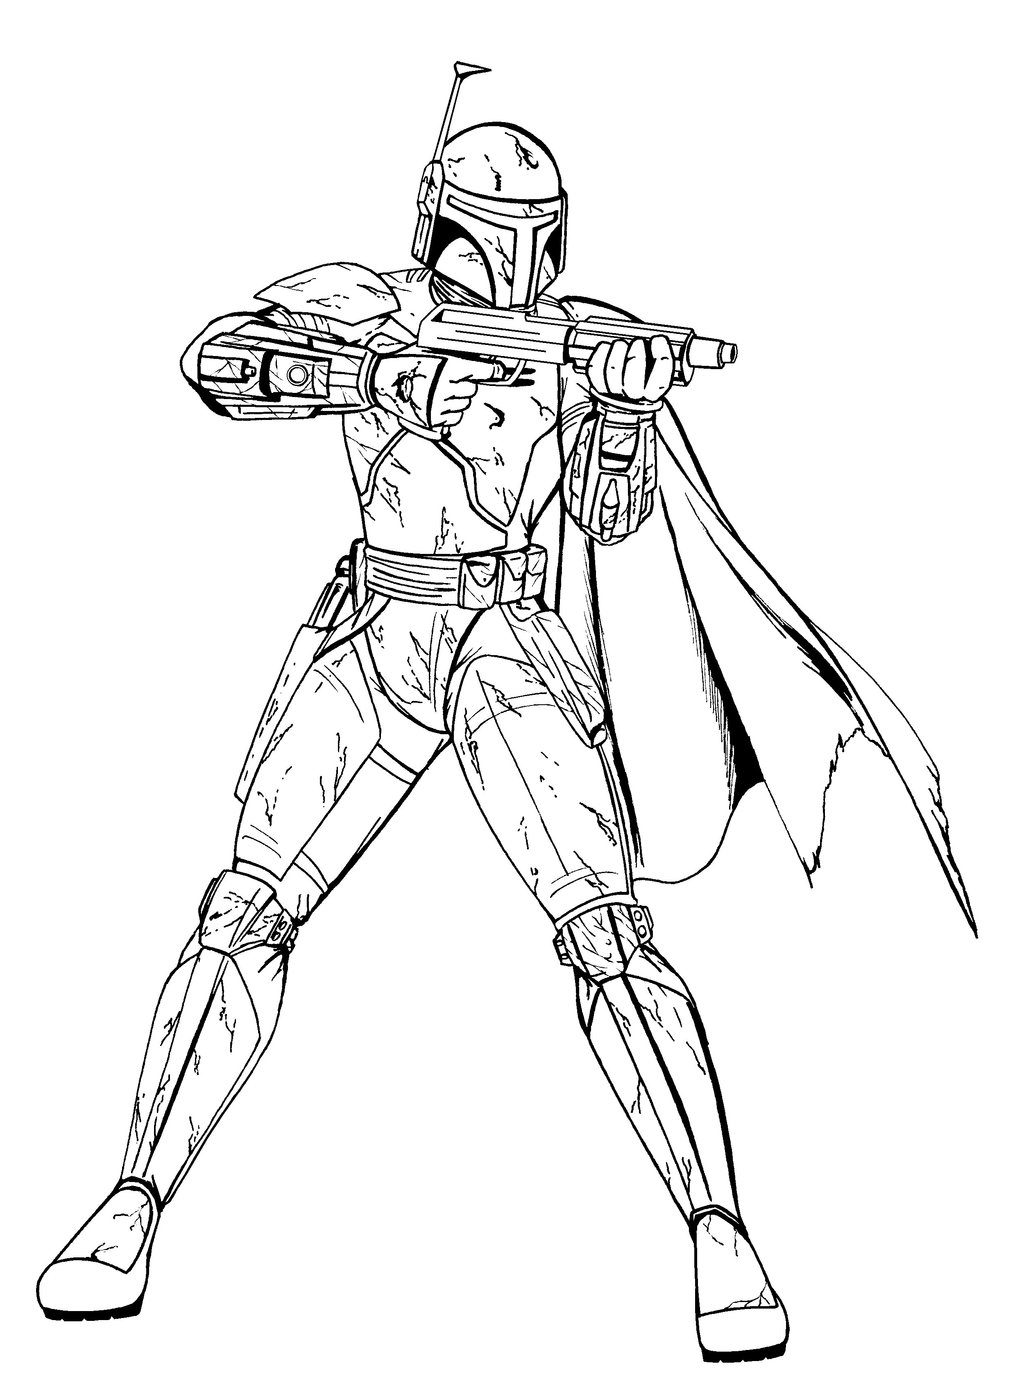 star wars coloring printables coloring pages star wars free printable coloring pages wars star printables coloring